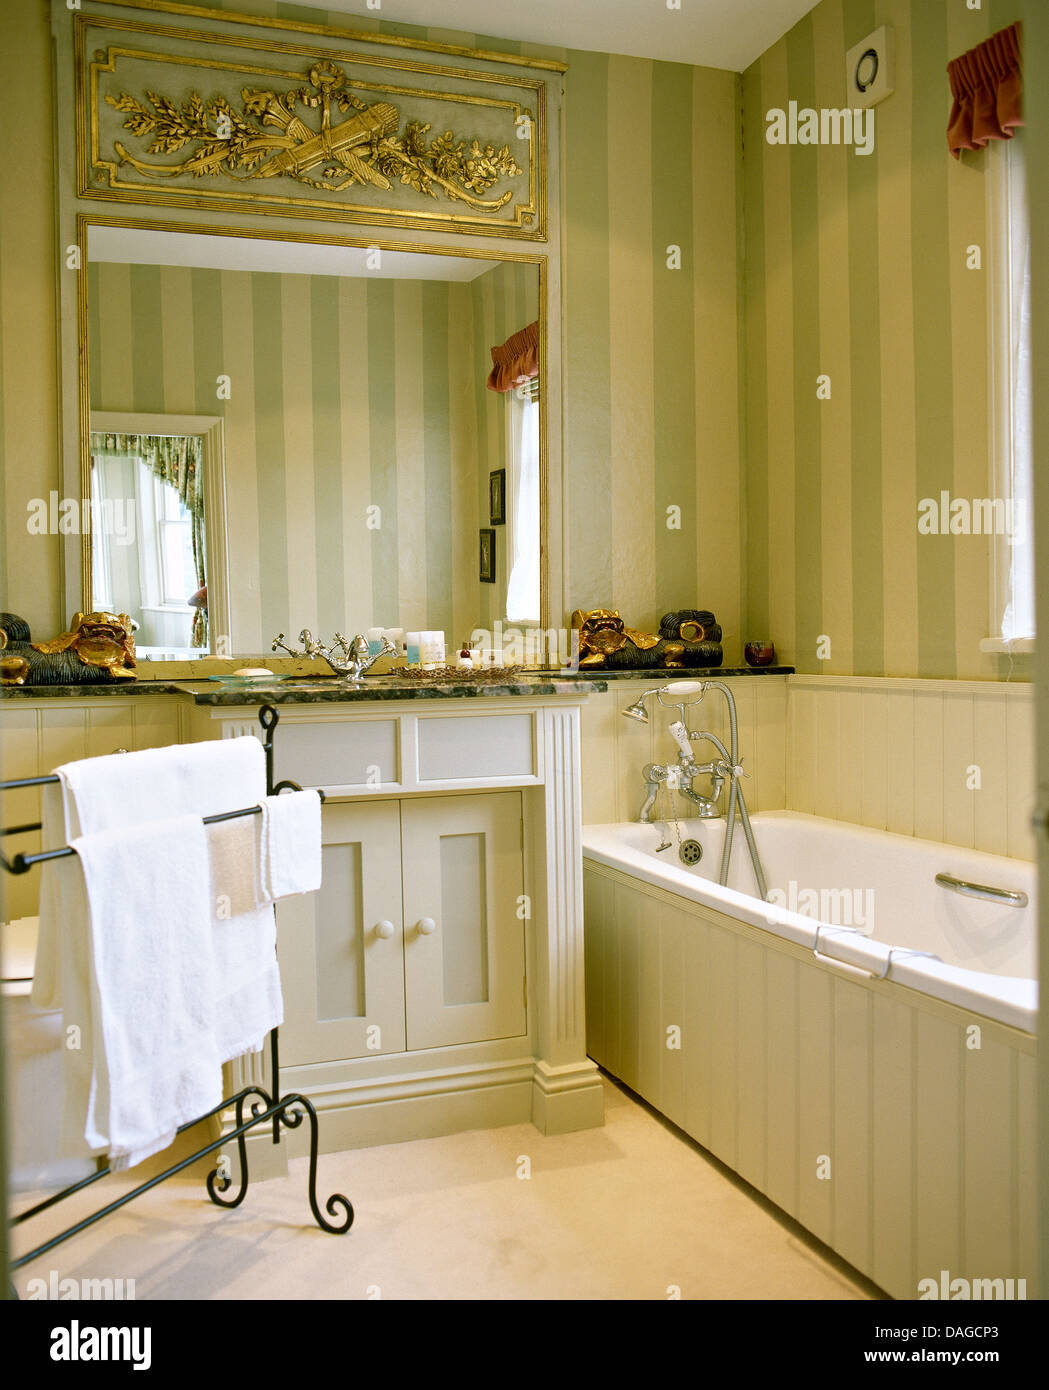 Tongue and groove for bathrooms - Large Ornate Mirror Above Basin In Bathroom With Striped Wallpaper And Painted Tongue Groove Paneling On Bath